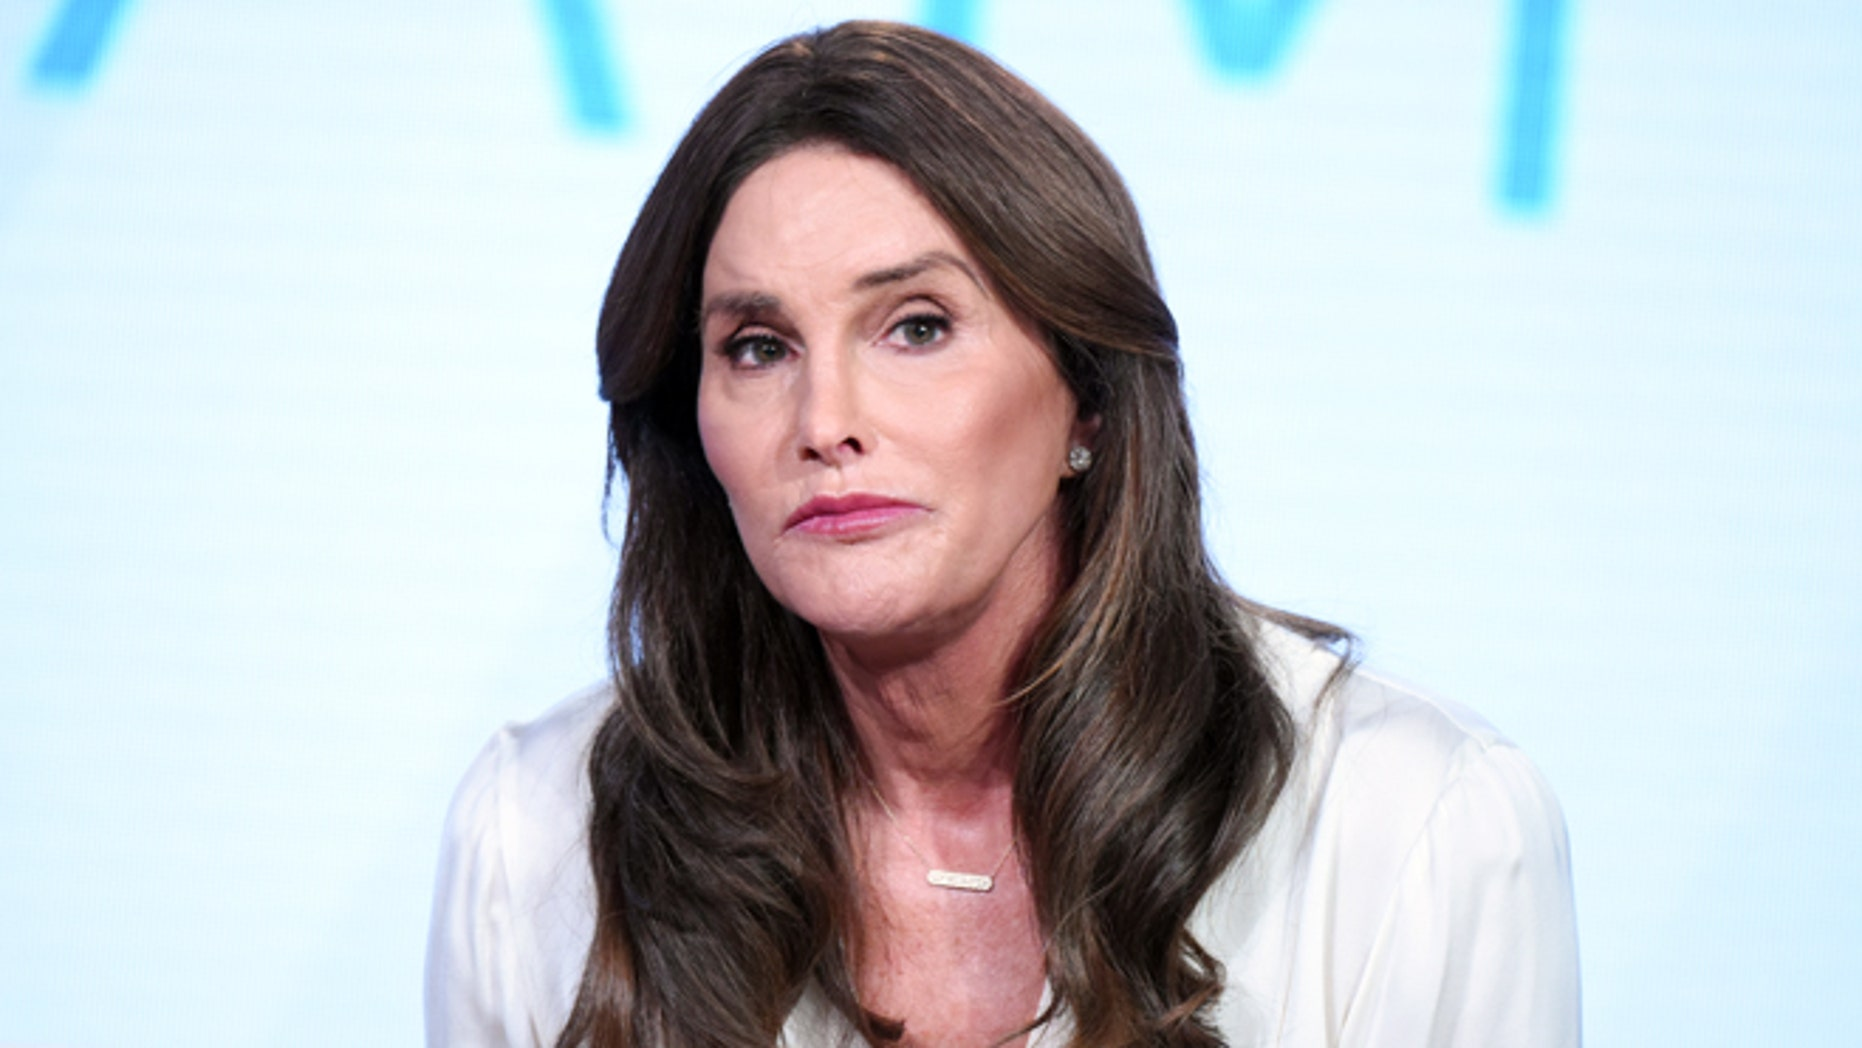 Caitlyn Jenner's Malibu house has reportedly burned down in the Woolsey Fire.